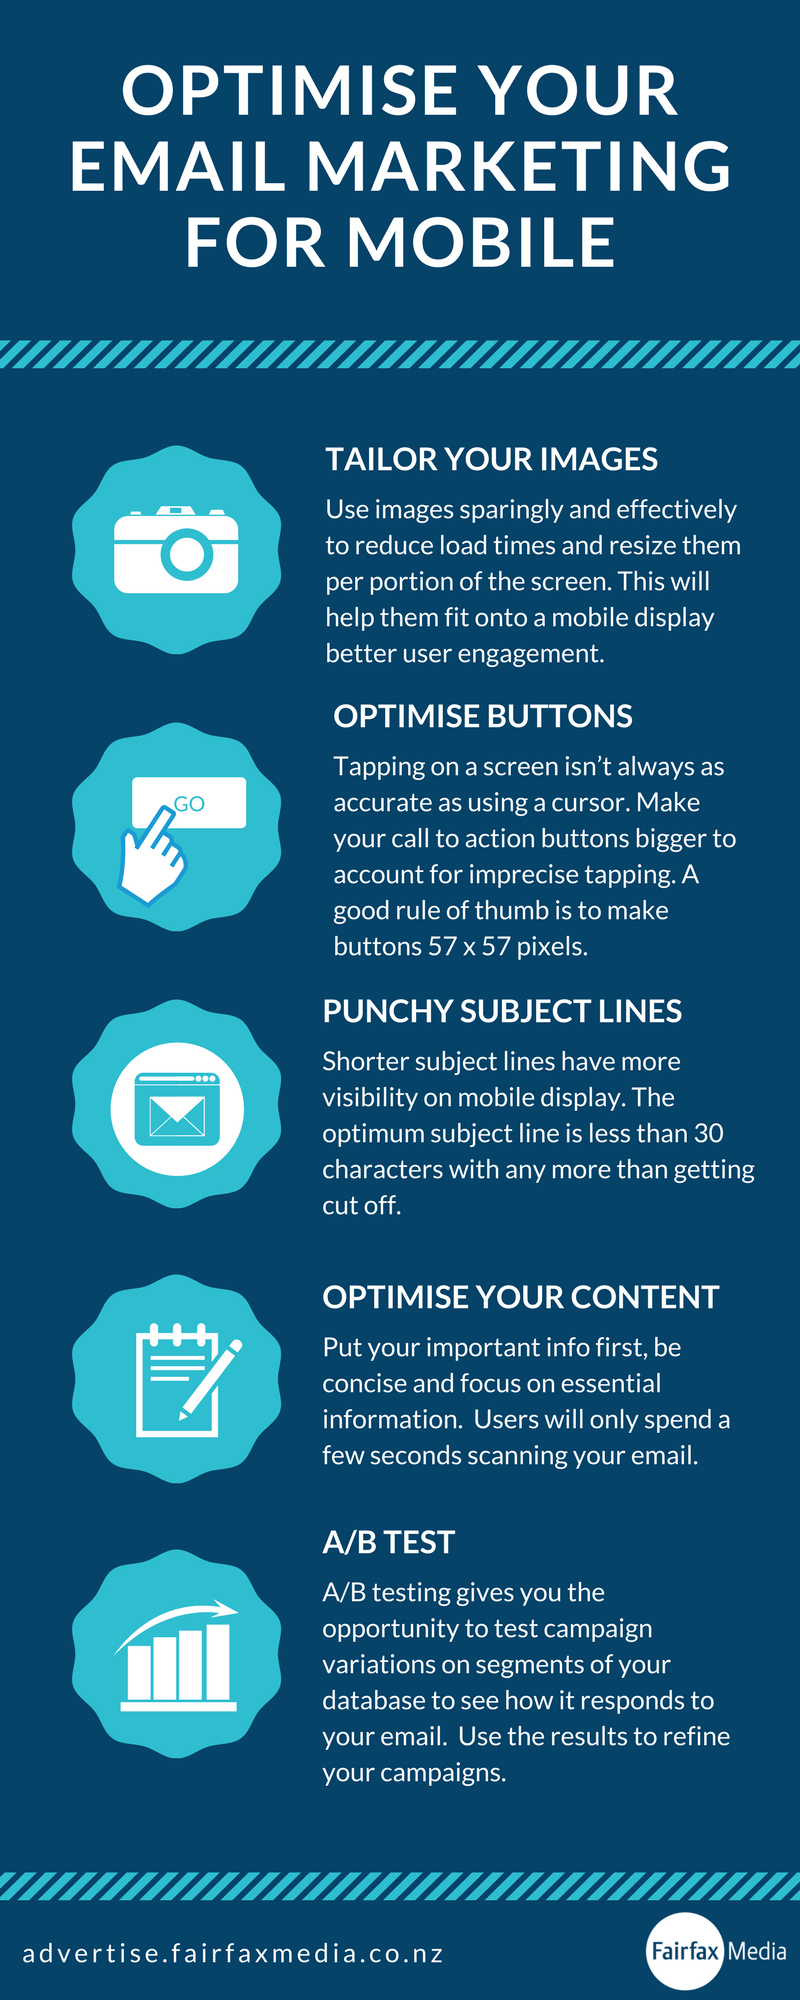 How to optimise email marketing for mobile.png